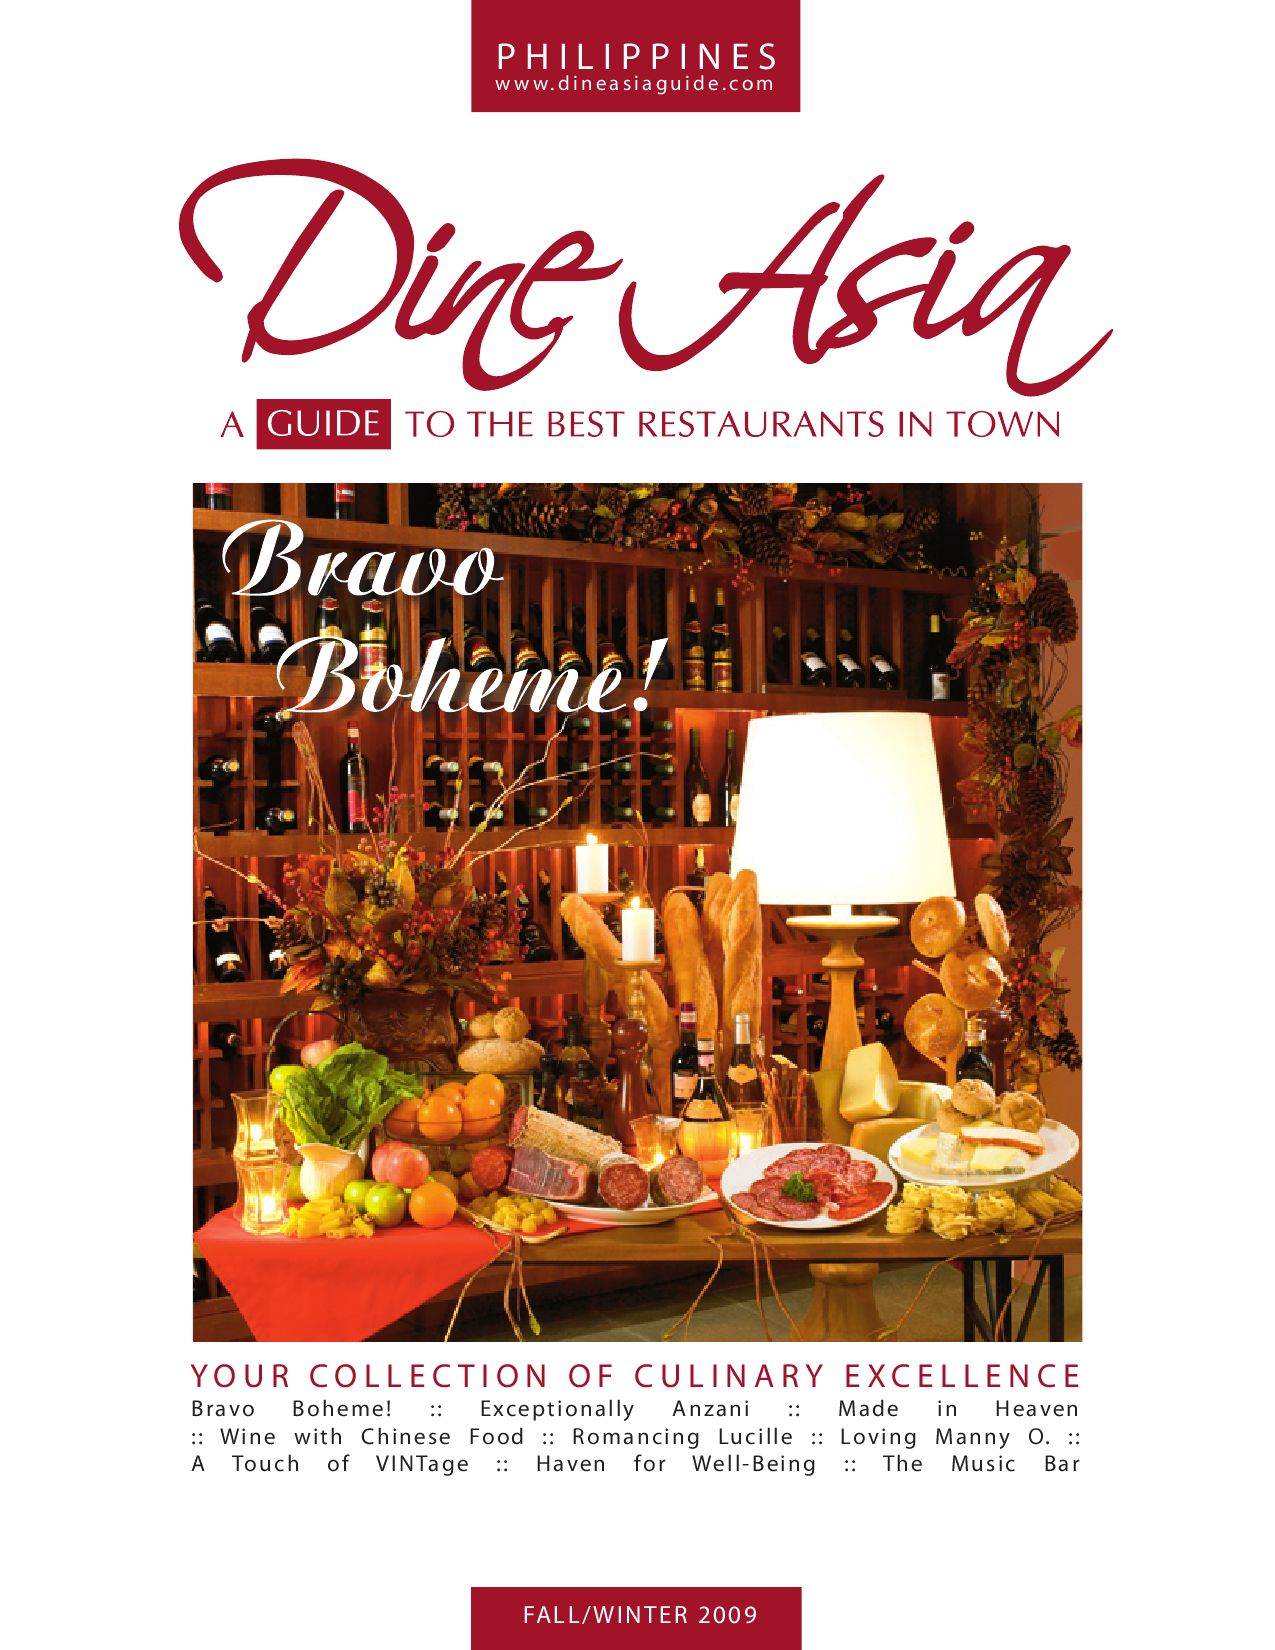 Dine Asia Guide Fall/Winter09 by Dine Asia Publishing - issuu